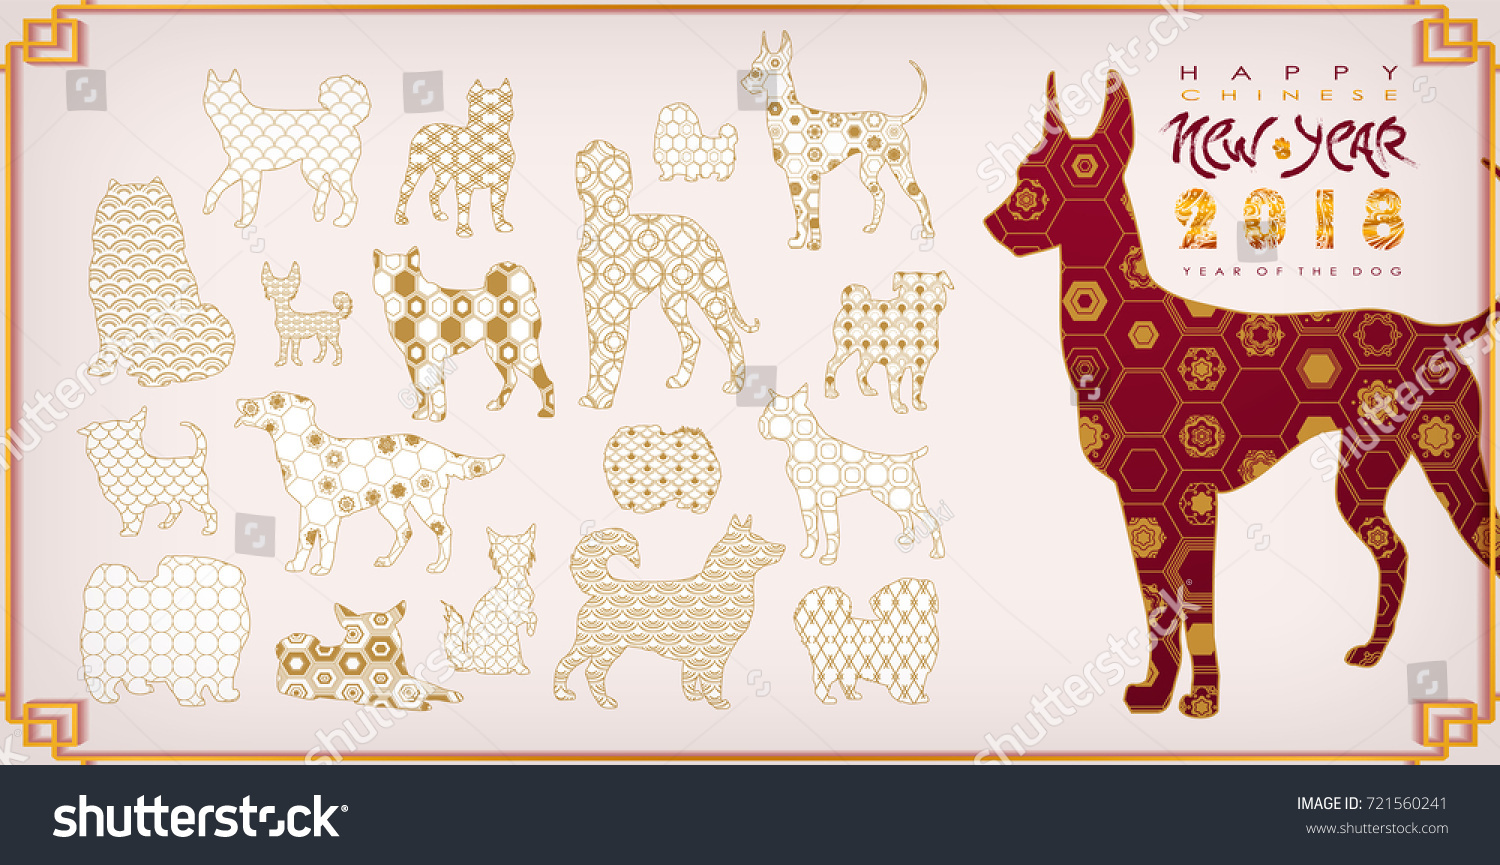 chinese new year 2018 zodiac dog happy new year card pattern art